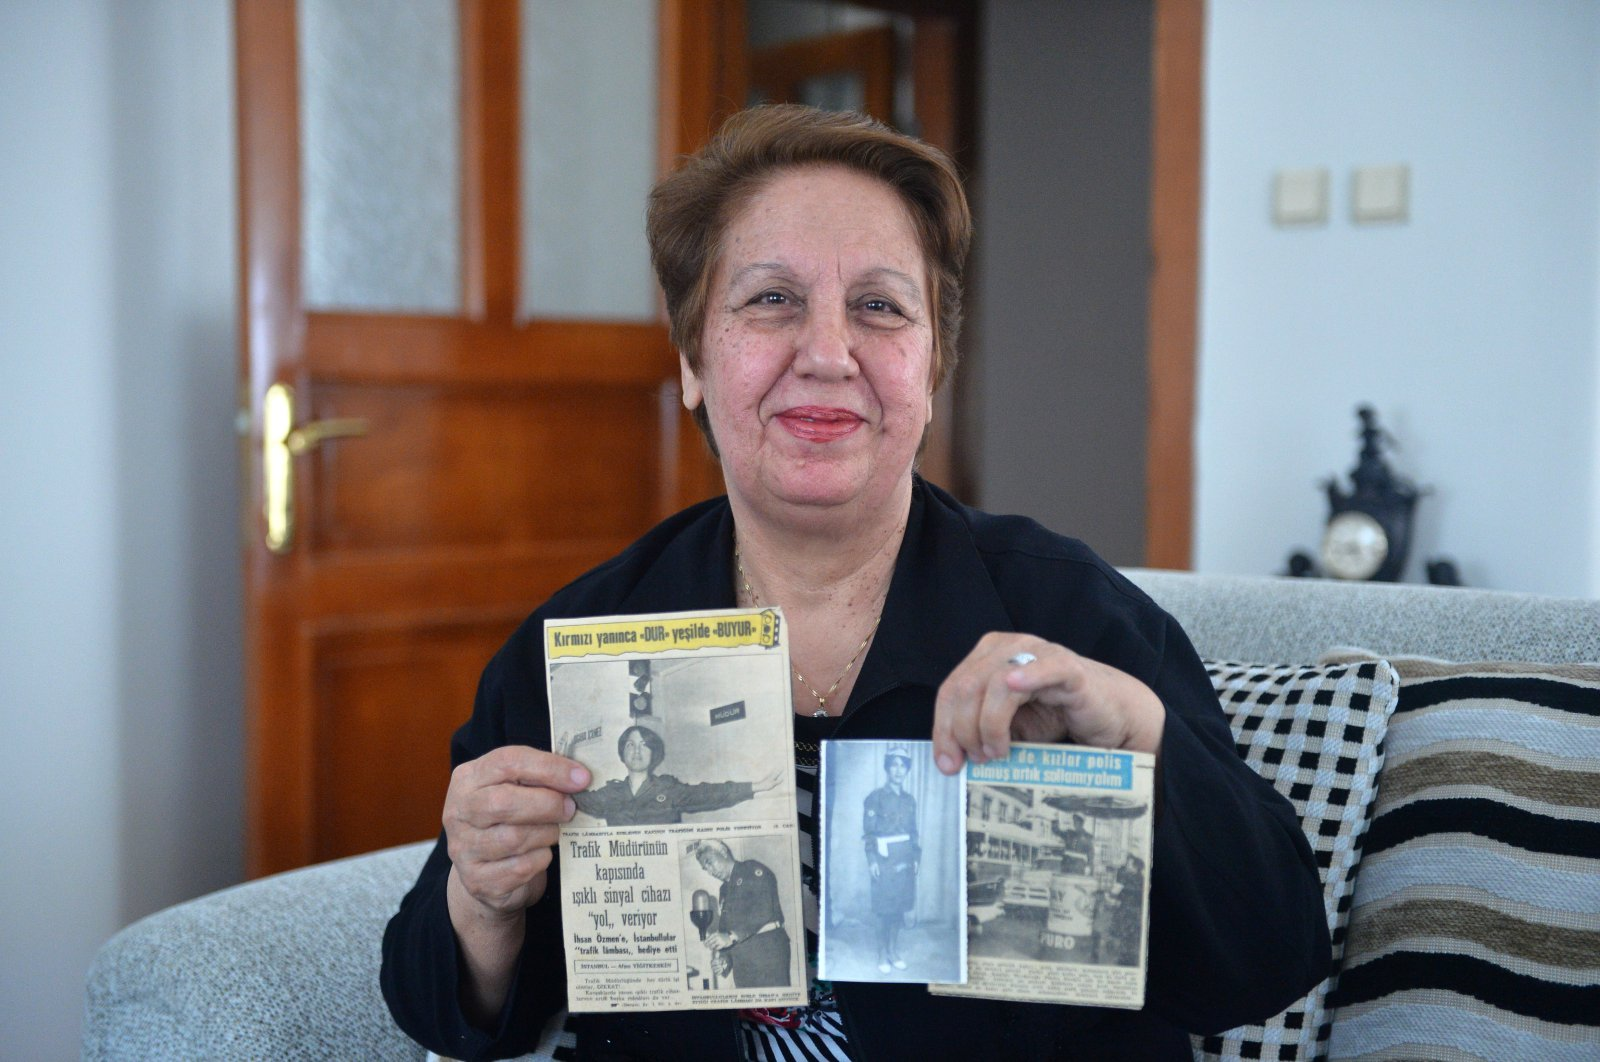 Fikriye Yavuz shows clippings with stories about her, in Mersin, Turkey, Wednesday, May 6, 2020. (AA Photo)